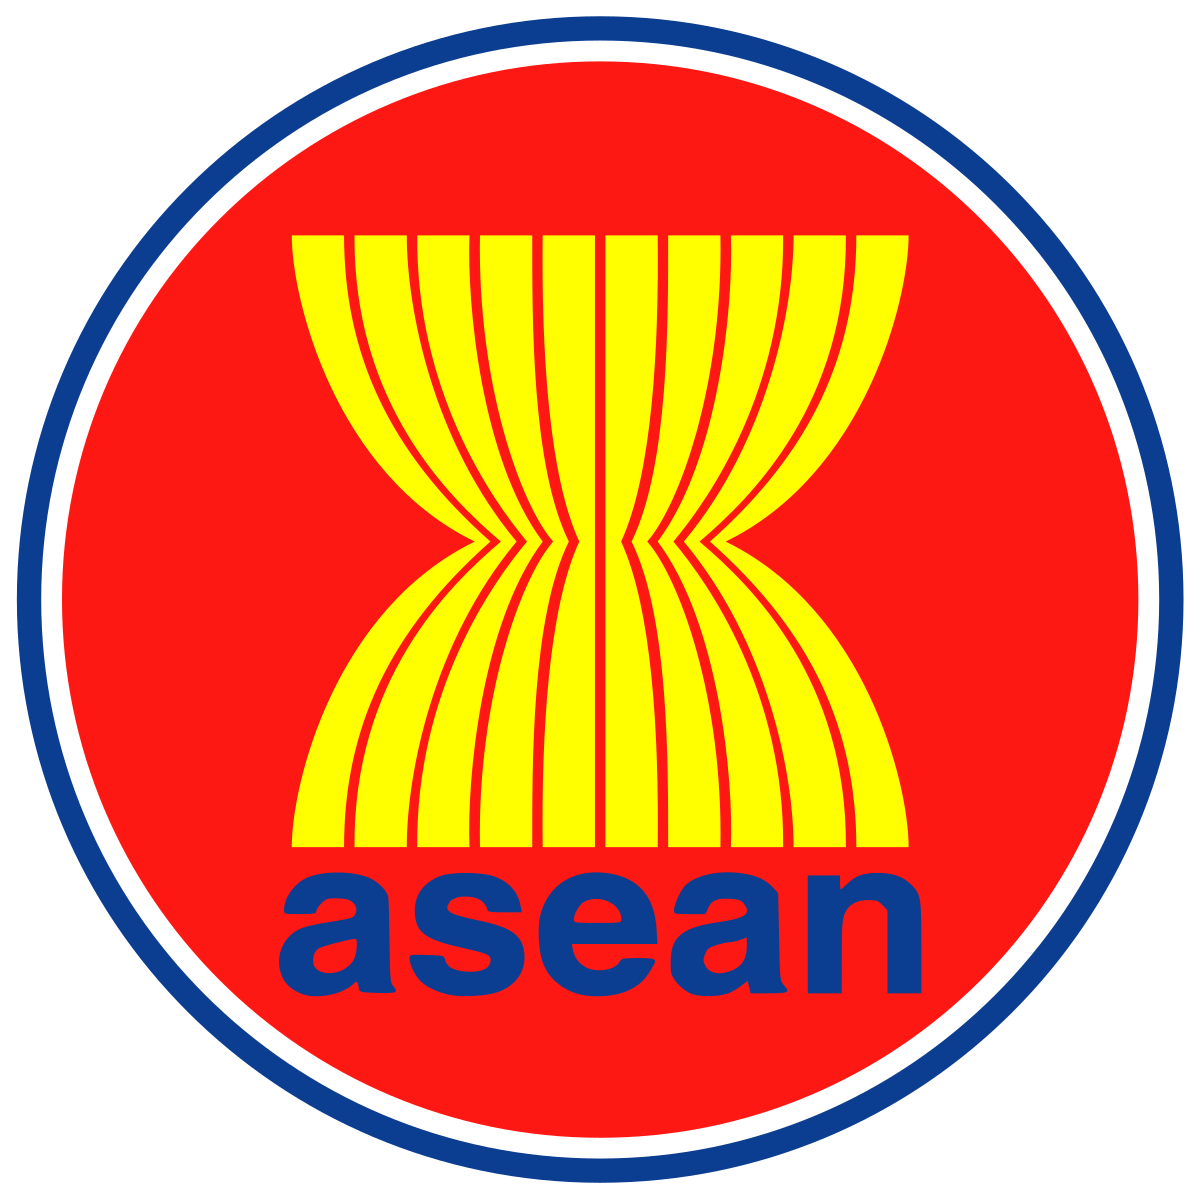 Emblem of the Association of Southeast Asian Nations.